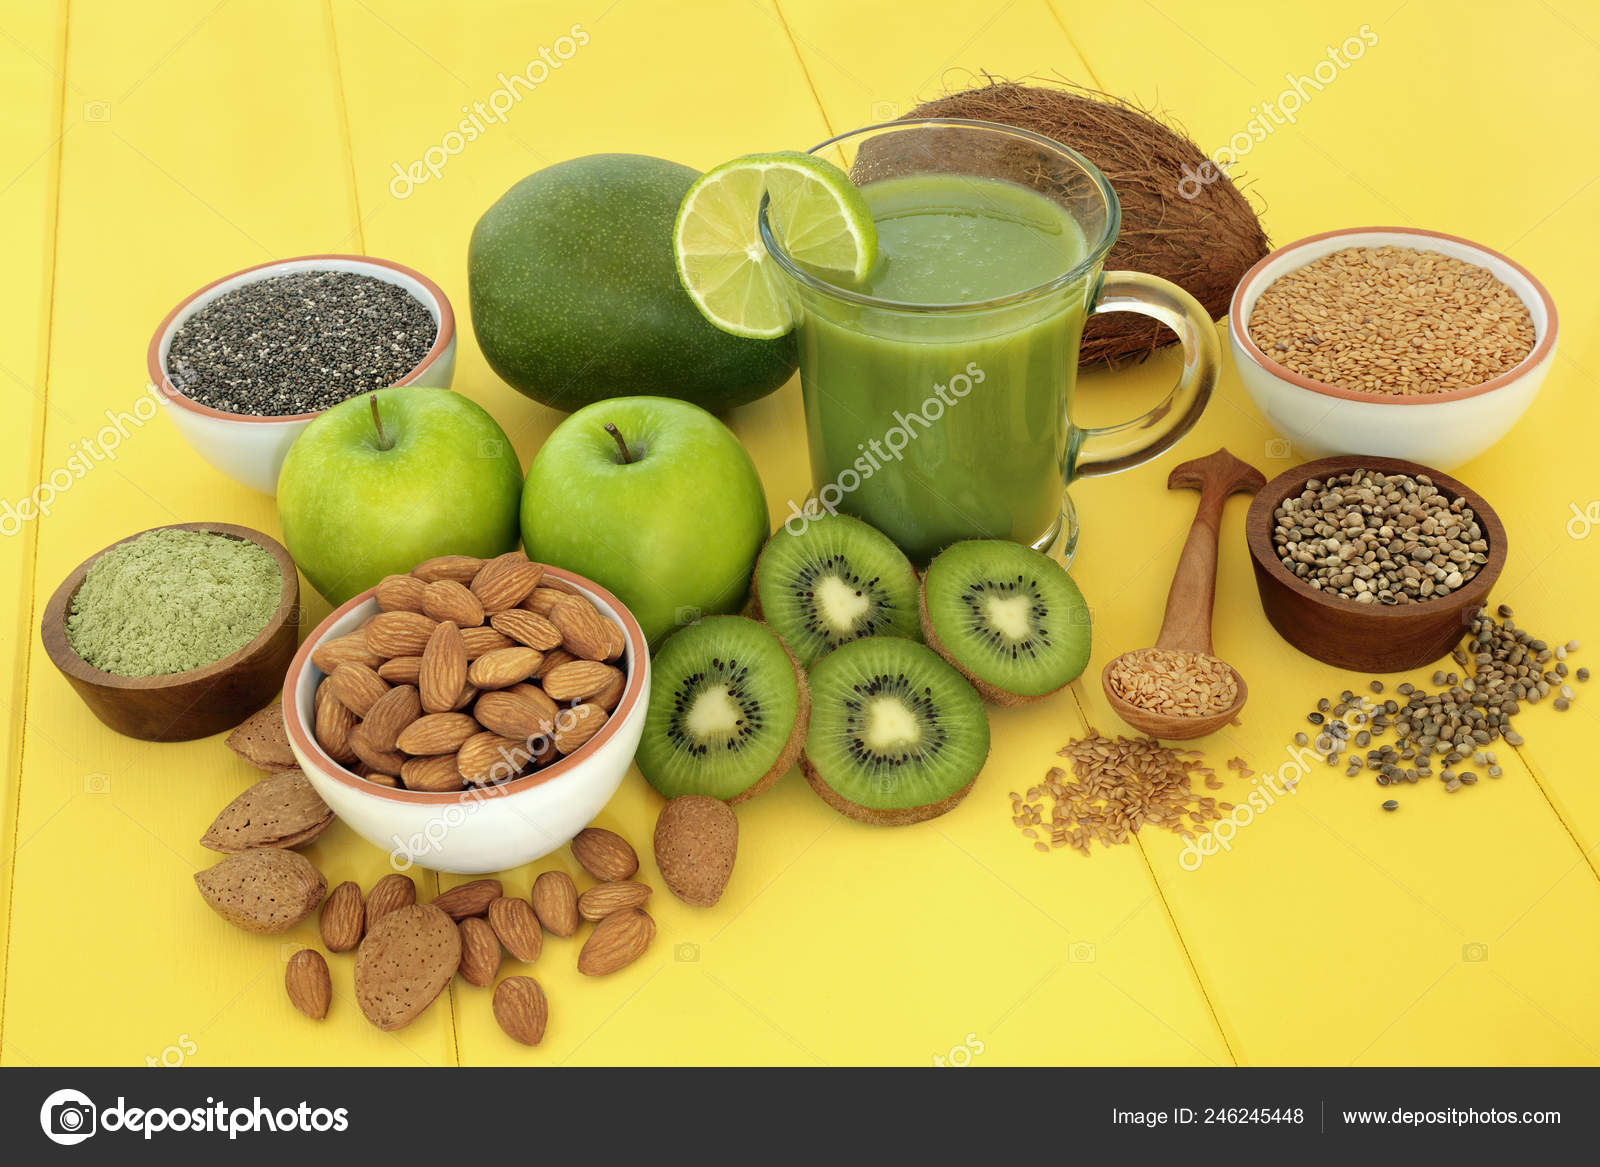 Healthy Fruit Juice Smoothie Drink Fitness Matcha Powder Almonds Flax Stock Photo C Marilyna 246245448